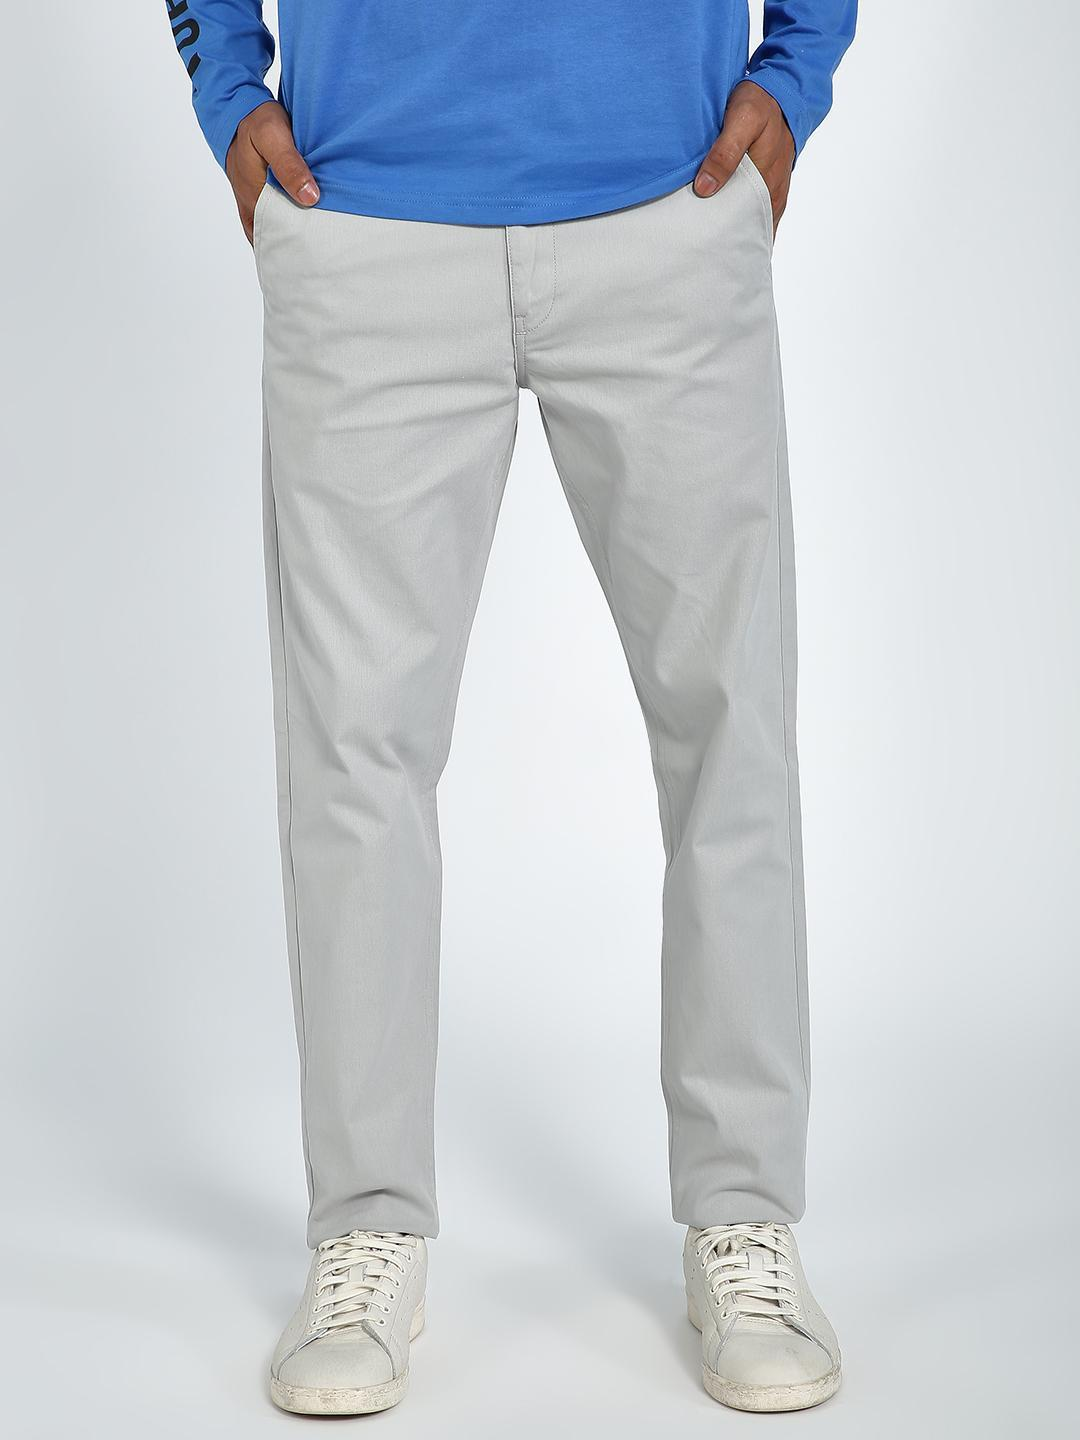 Blue Saint Grey Basic Slim Fit Trousers 1